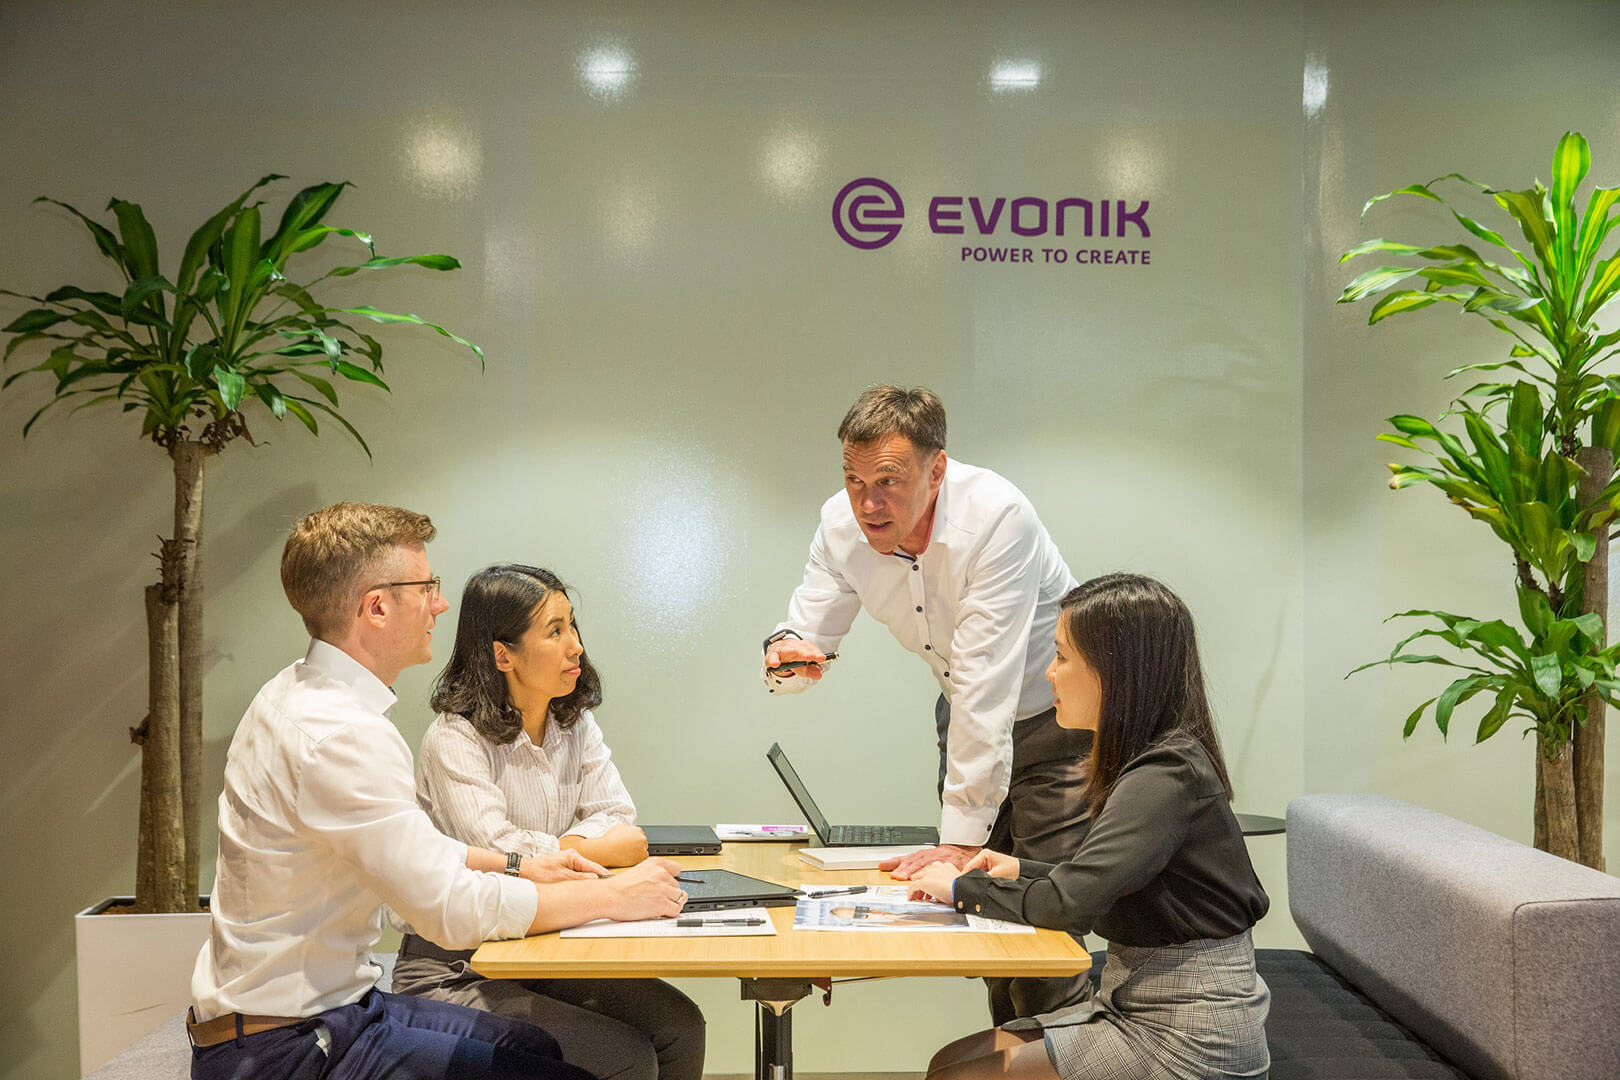 Employees of Evonik in a meeting